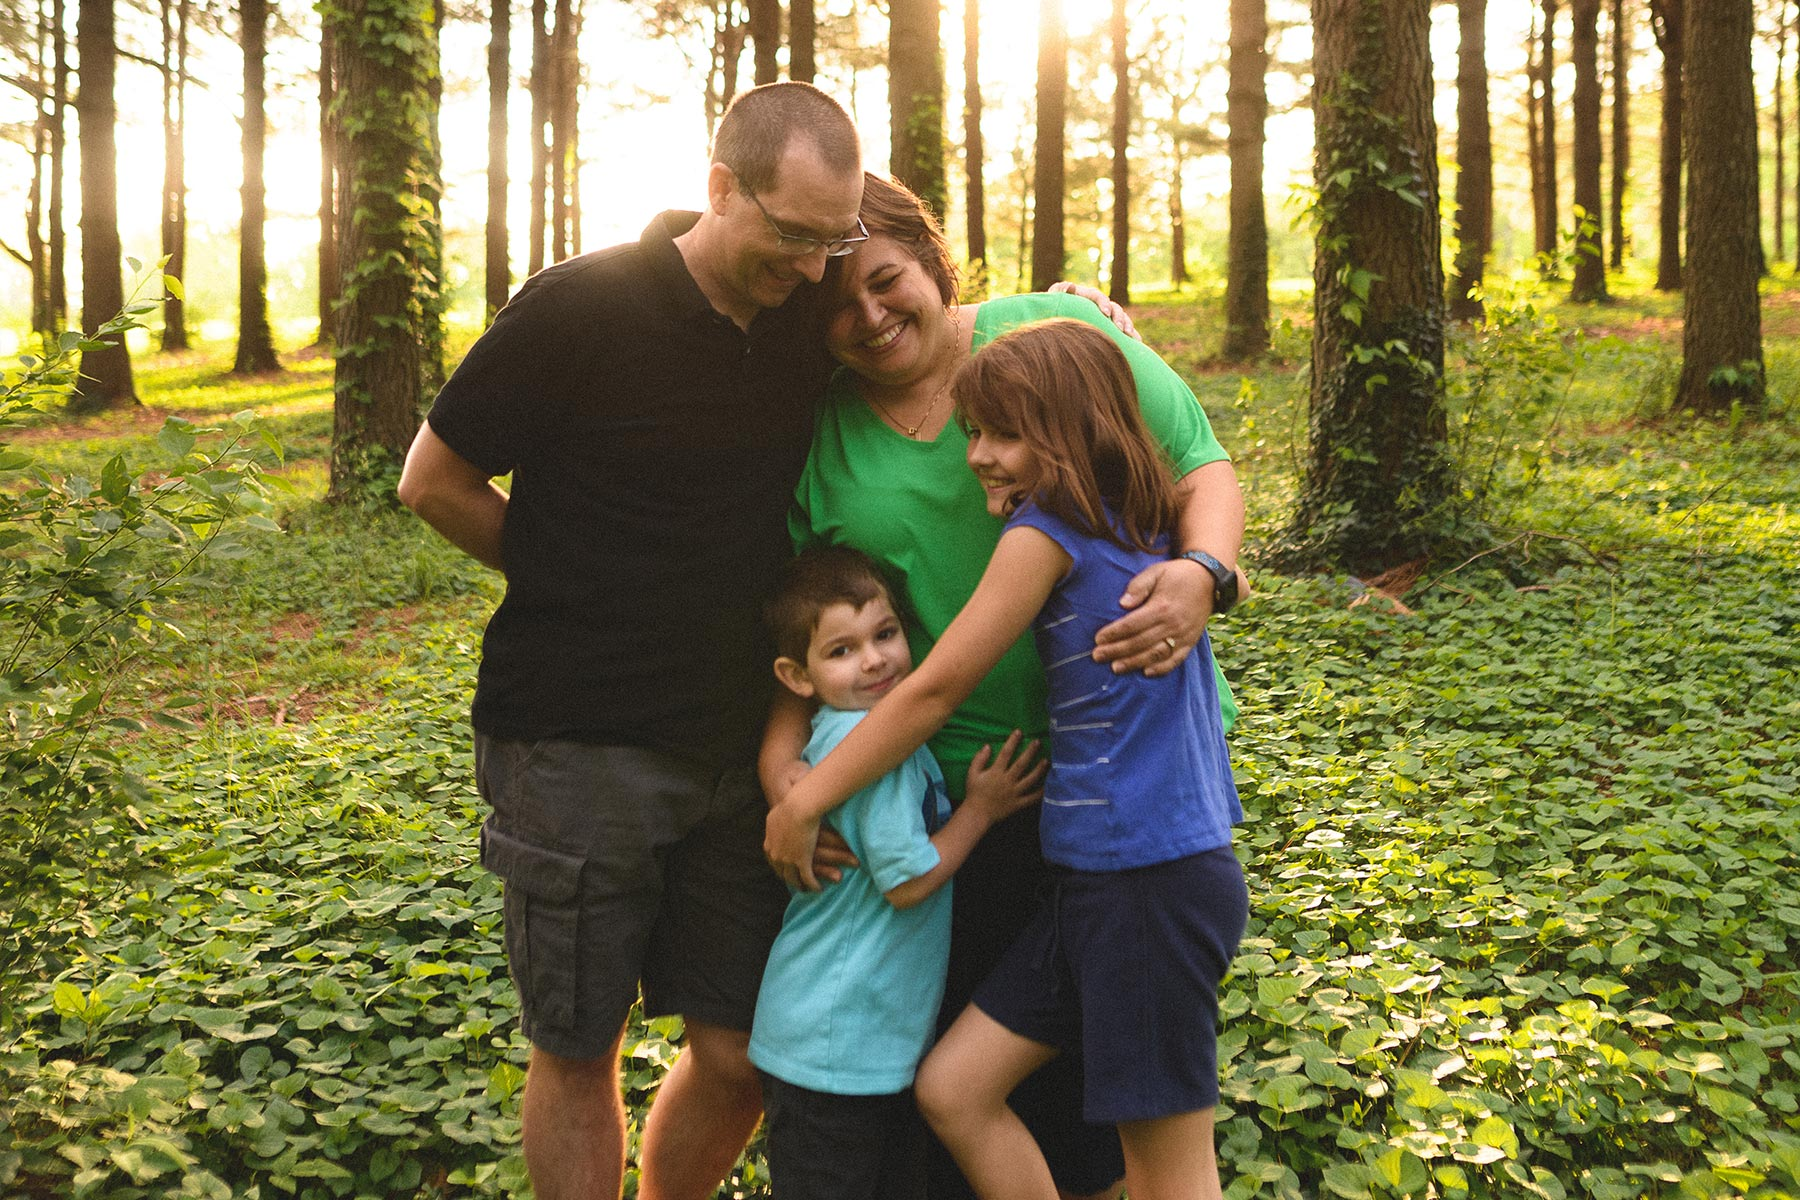 The Middleton family stops for a group hug and photo in a lush forest.